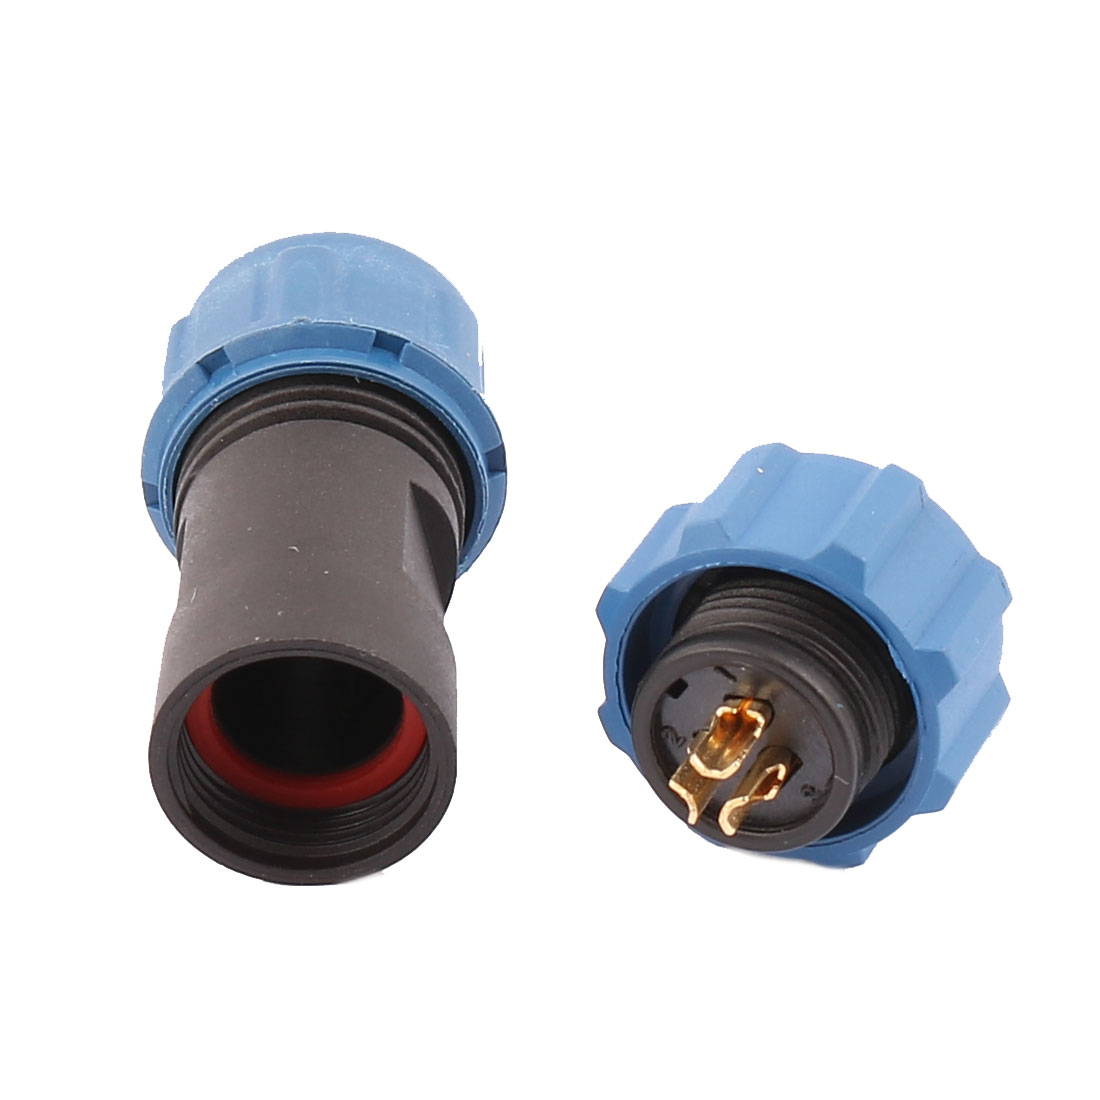 AC 250V 3 Poles SP1310/S Waterproof Aviation Socket Dustproof Adapter Connector